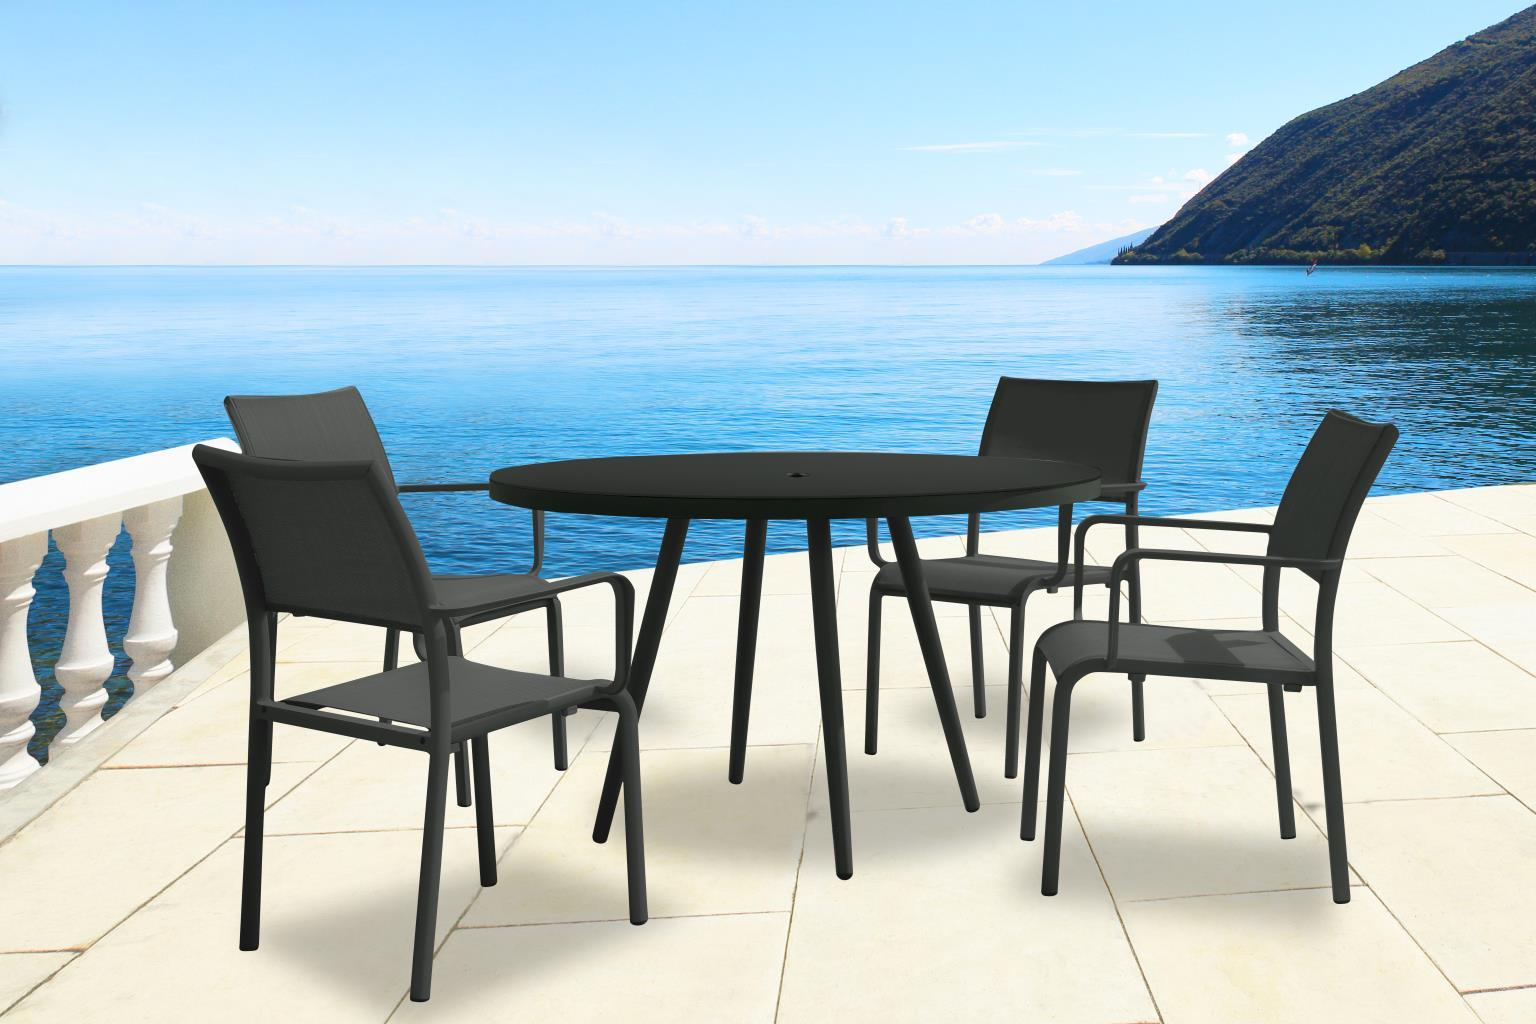 TOPLINE Fiji Outdoor dining Table & chairs with arms set